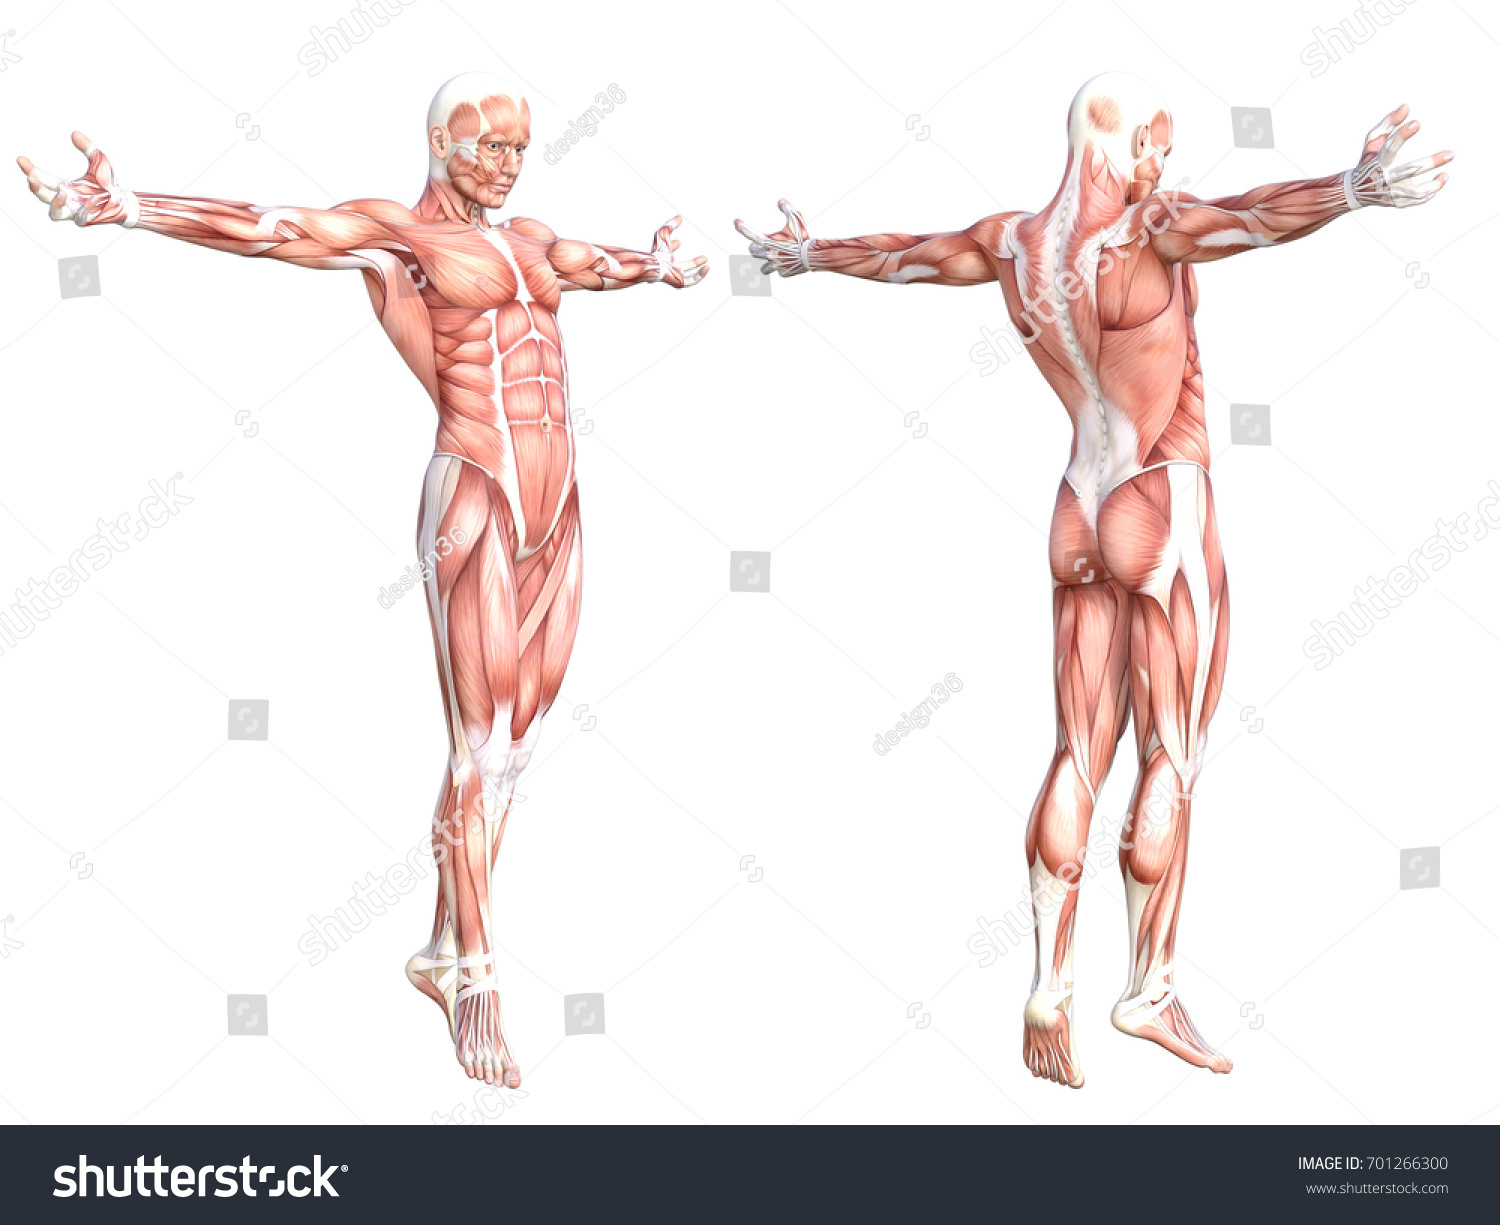 Conceptual Anatomy Healthy Skinless Human Body Stock Illustration ...